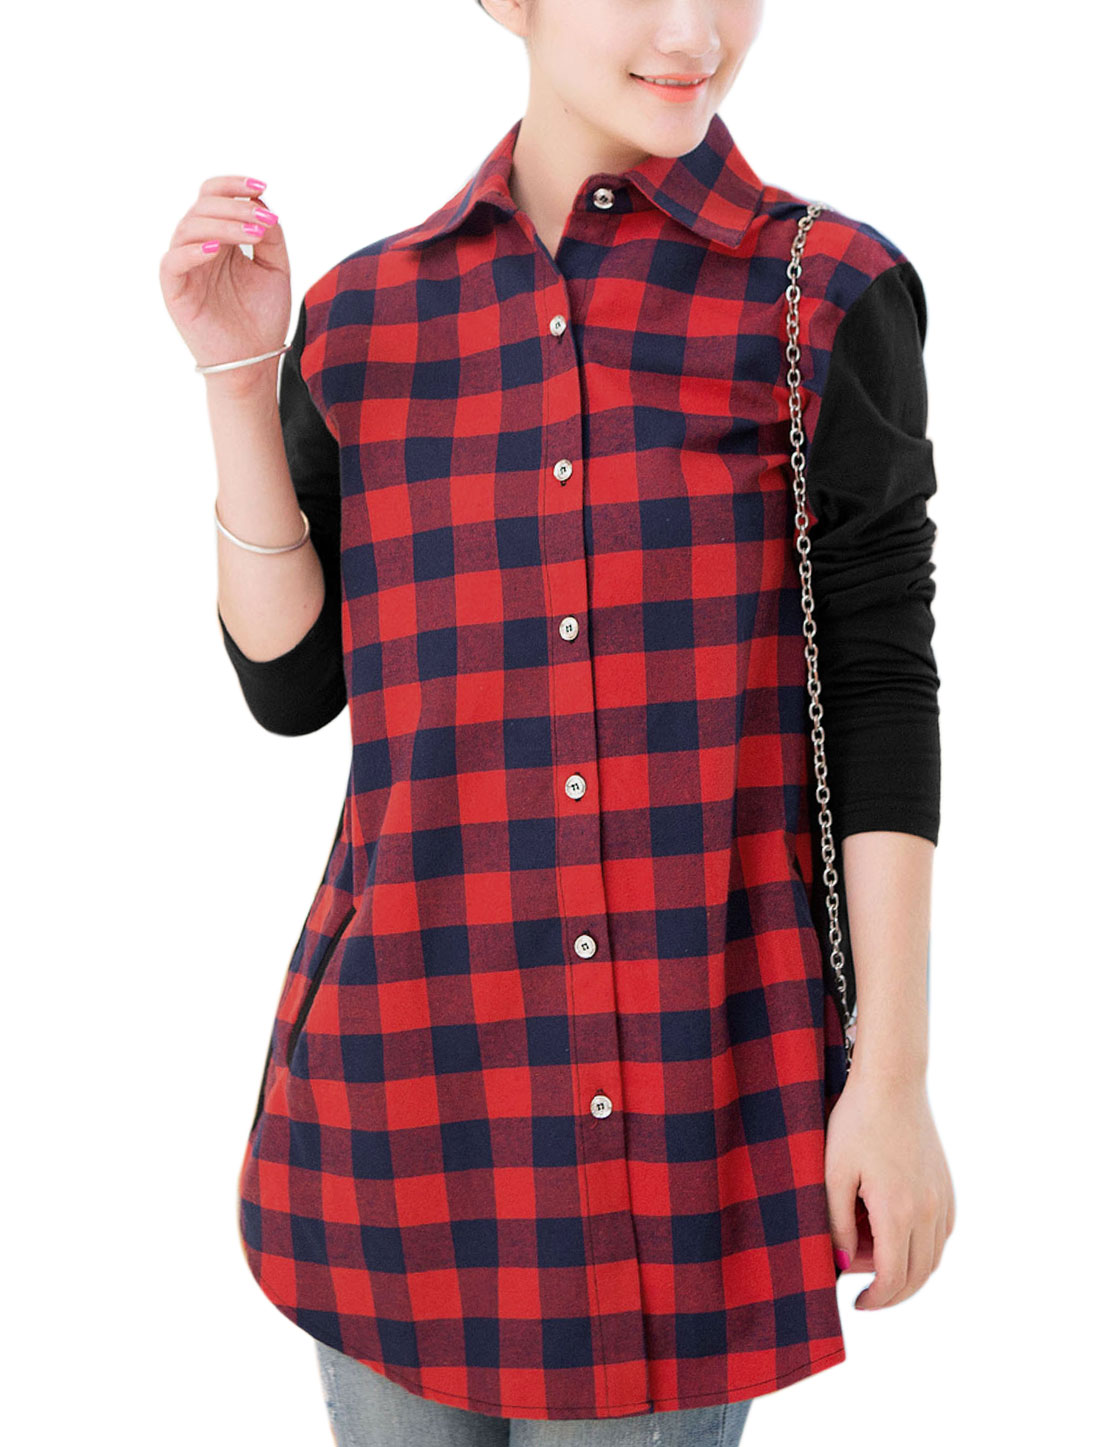 Maternity Spliced Design Plaids Pattern Leisure Shirt Navy Blue Red XL